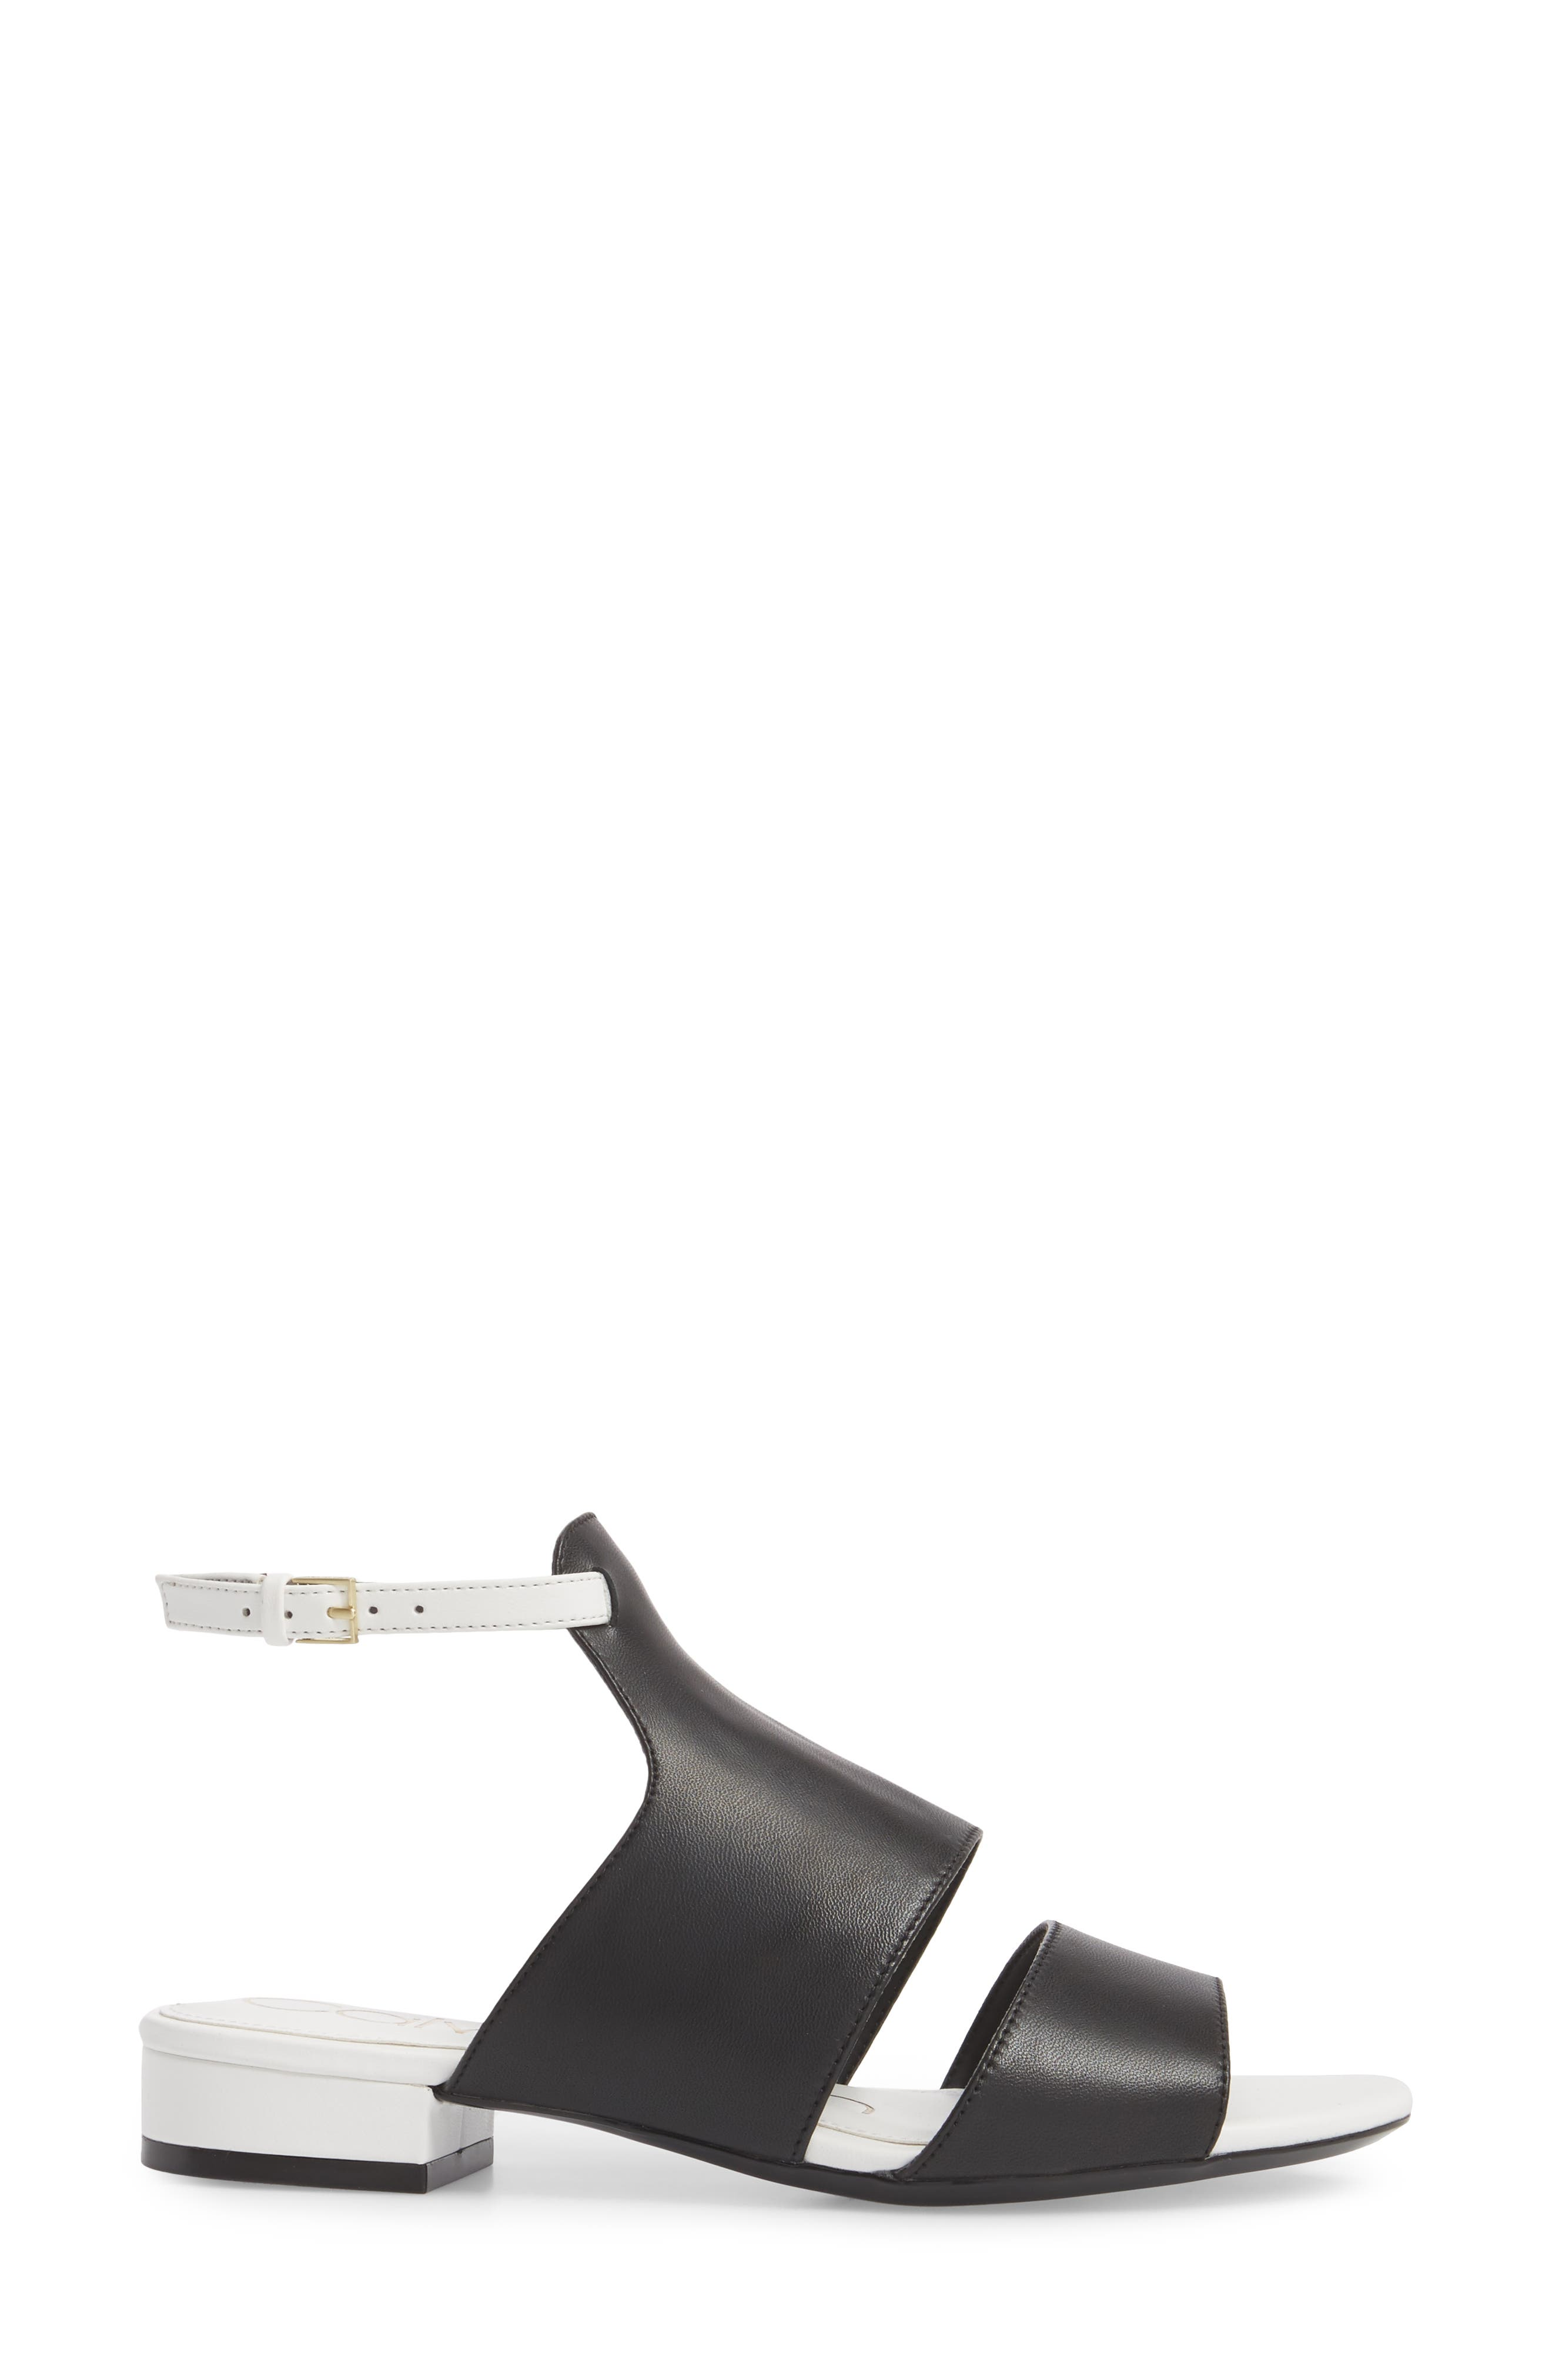 Fernarda Sandal,                             Alternate thumbnail 3, color,                             Black Leather